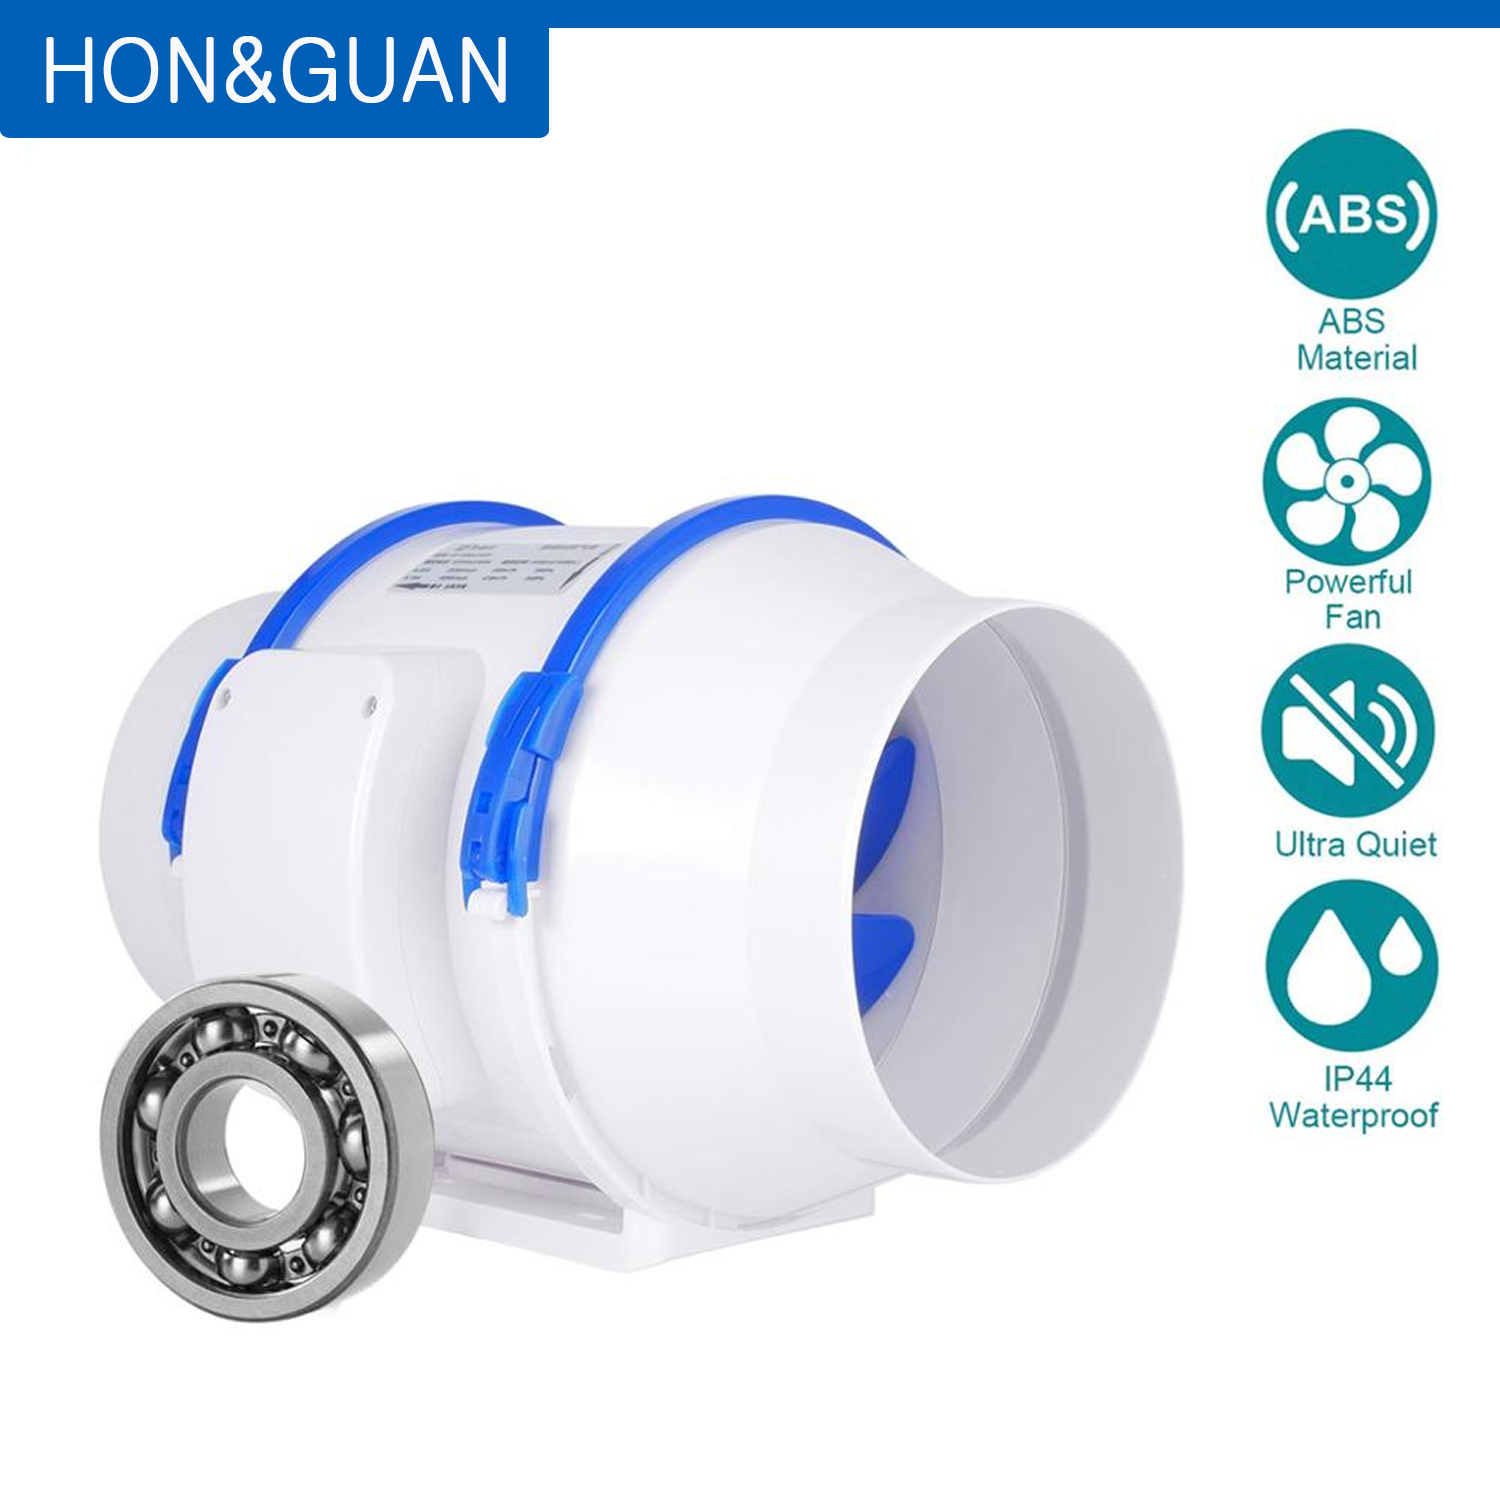 Hon&Guan 110V Inline Fans,  6'' (ø150mm) Inline Duct Extractor Fan Max Airflow 530m3/h For Bathroom, Greenhouses, Hydroponics